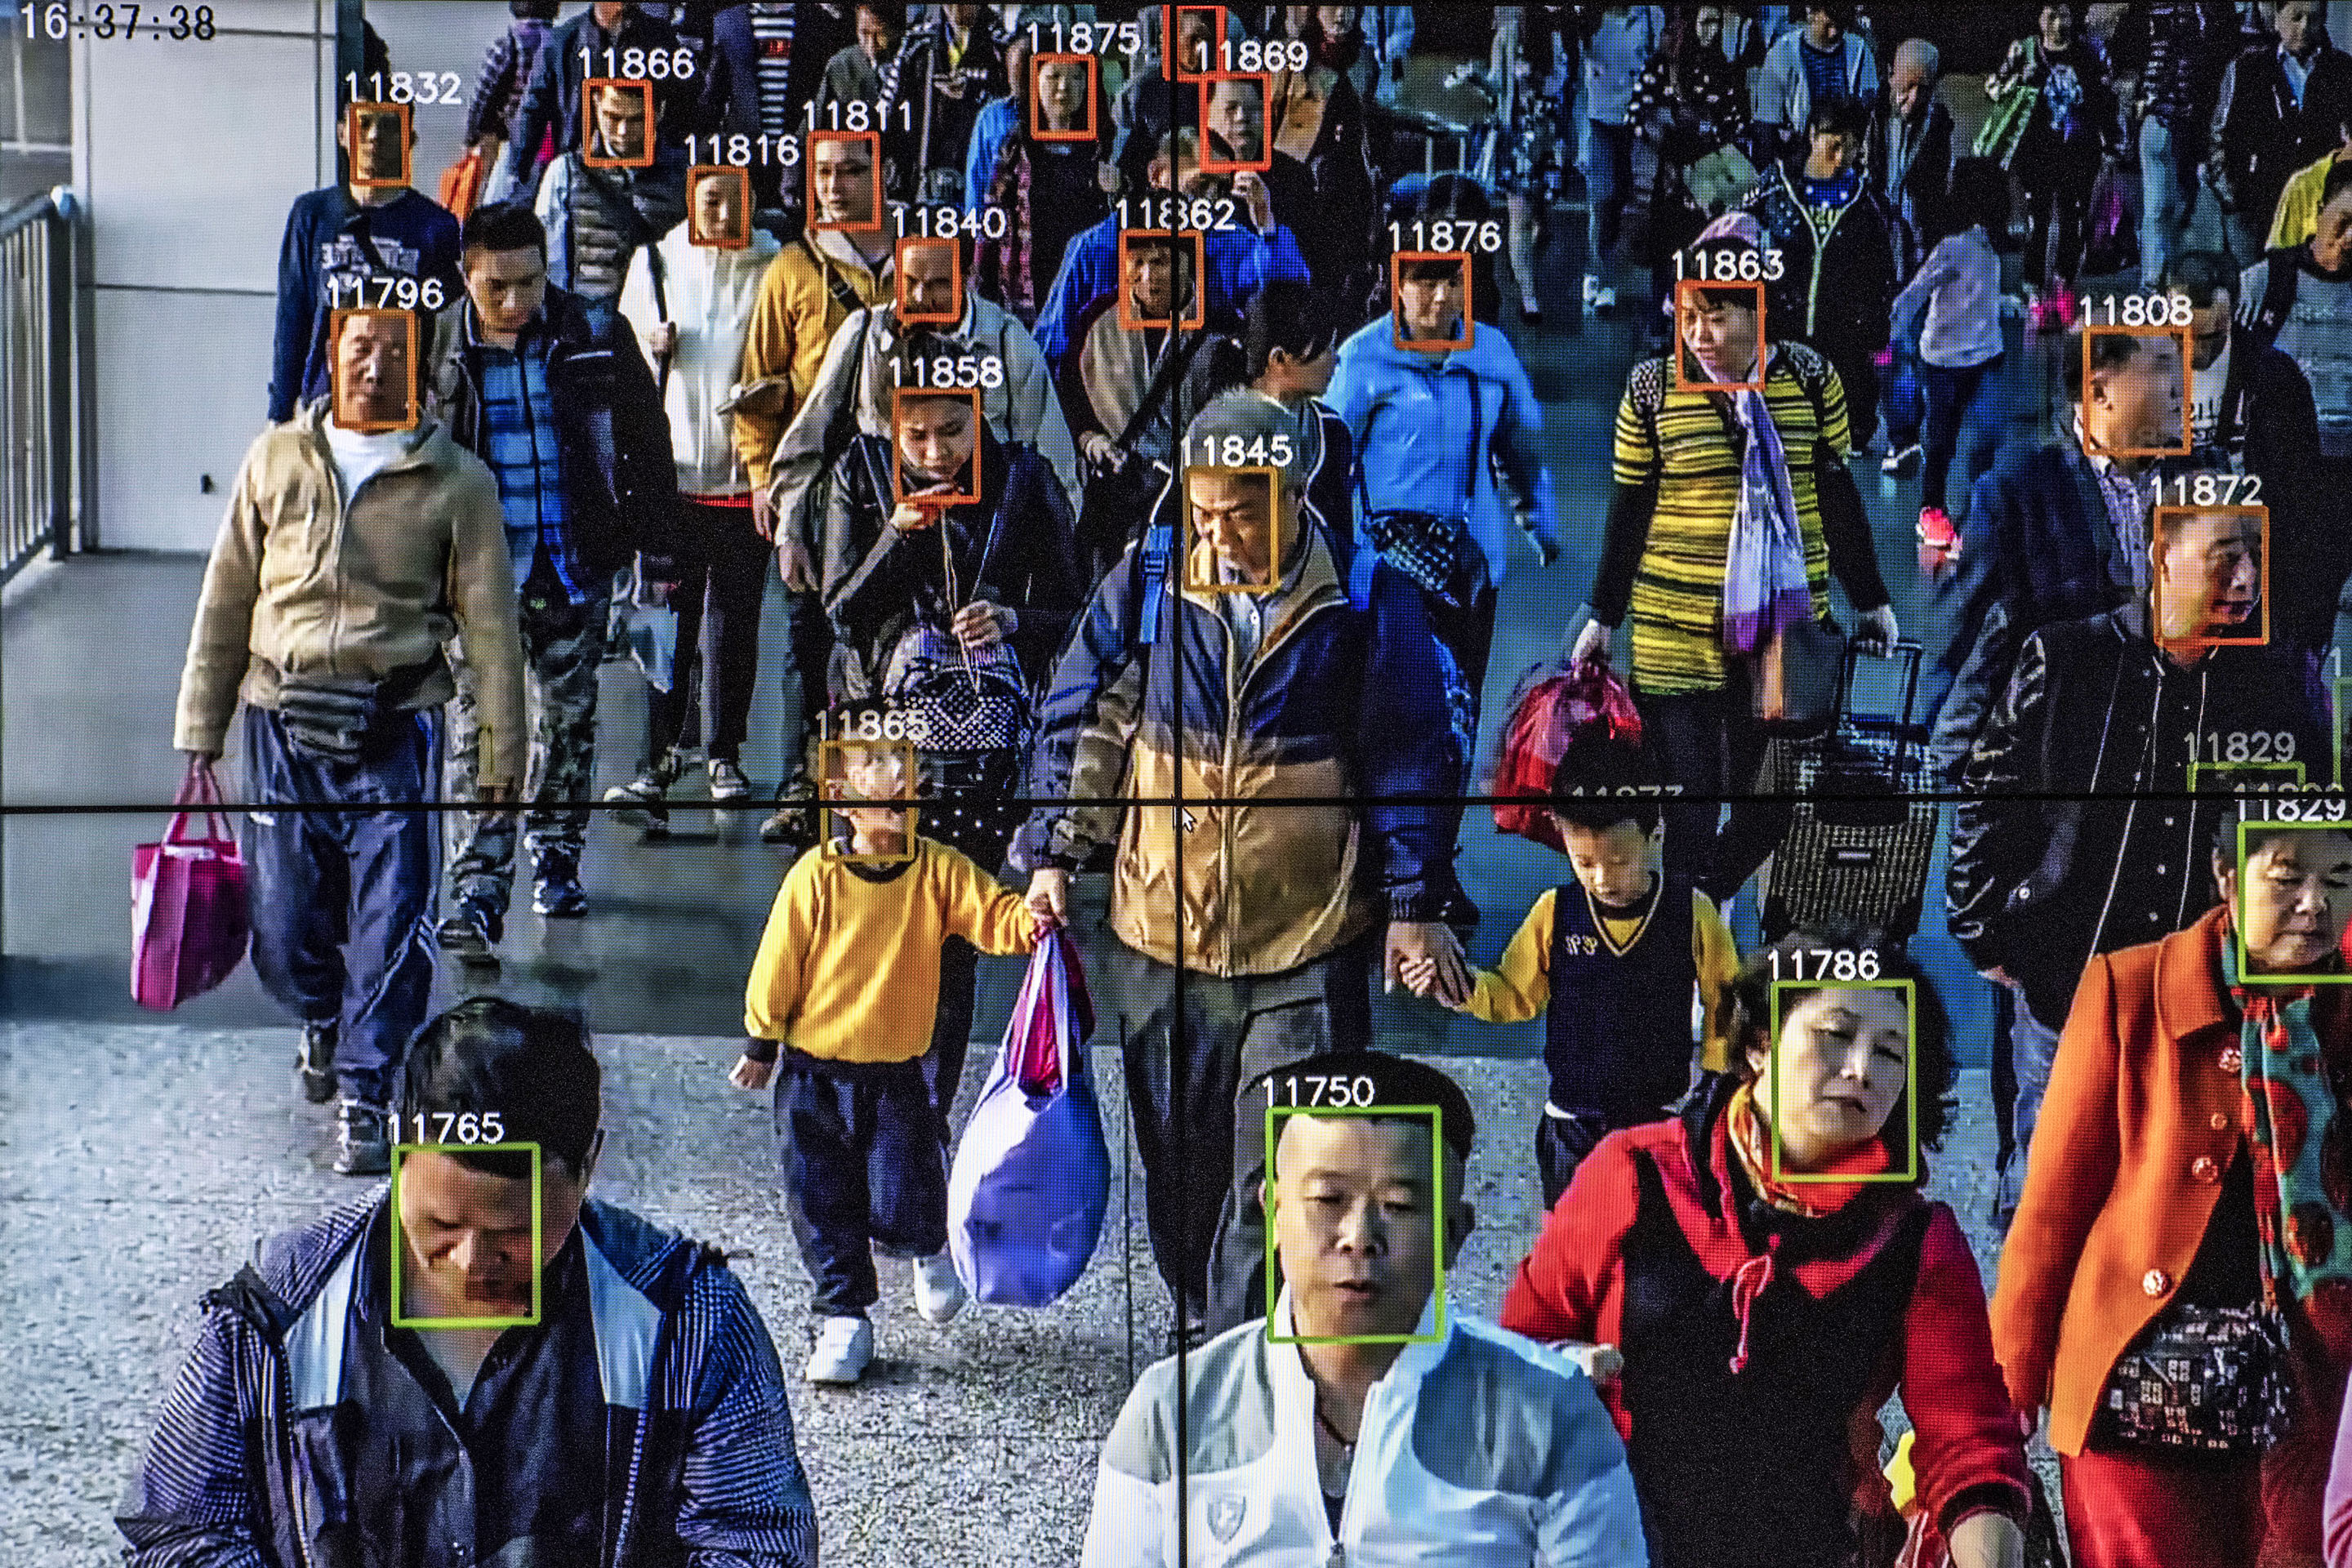 Technological%20Innovation%20in%20the%20Age%20of%20COVID%2019%20c0a76bcf738941d388ef3c84c4b07a51/facial-recognition.jpg